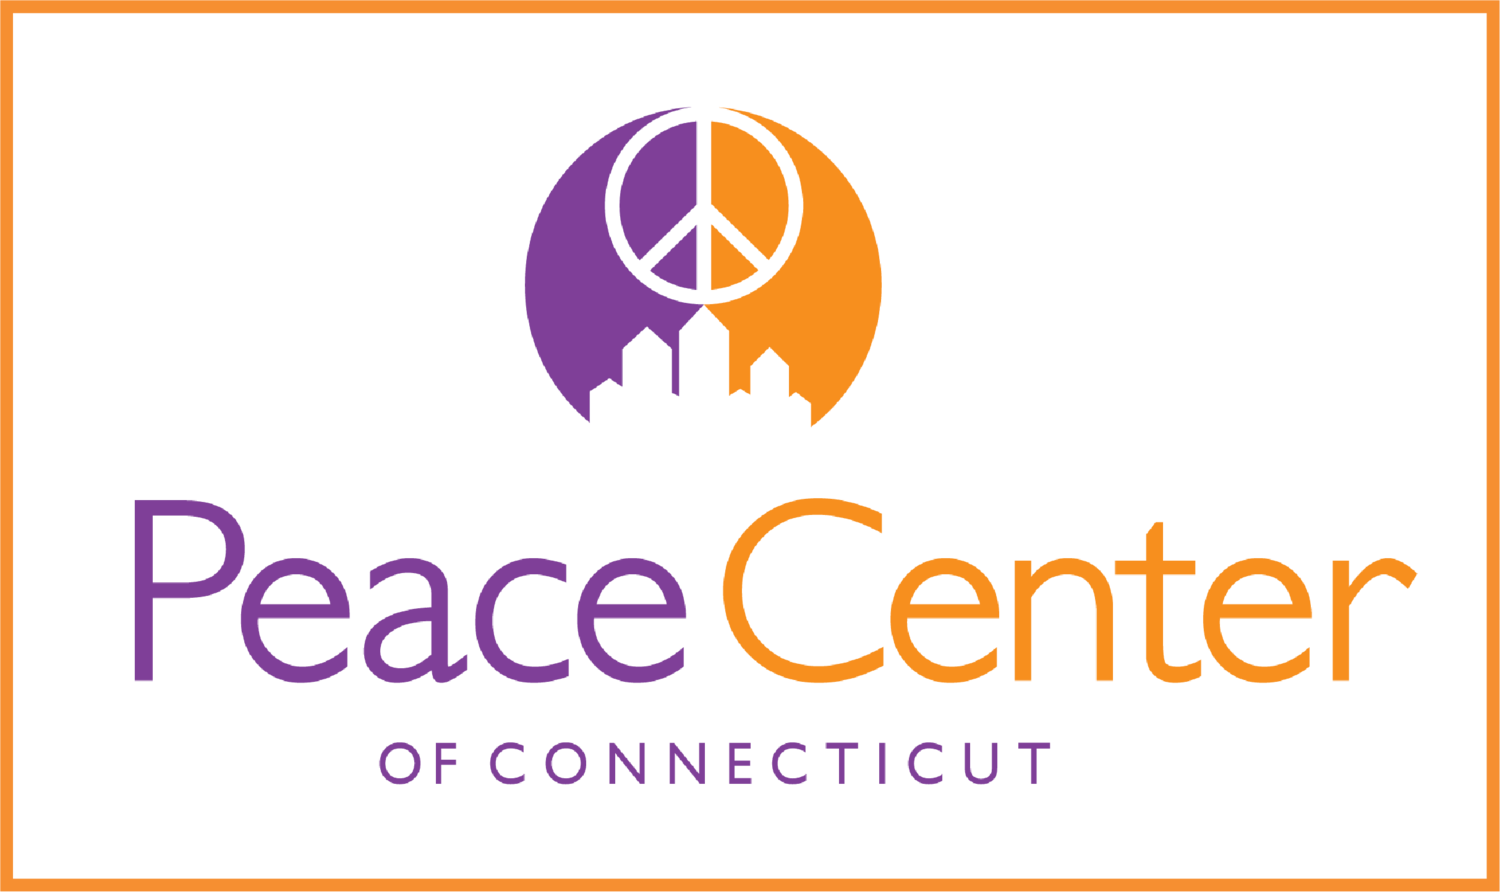 Peace Center of Connecticut